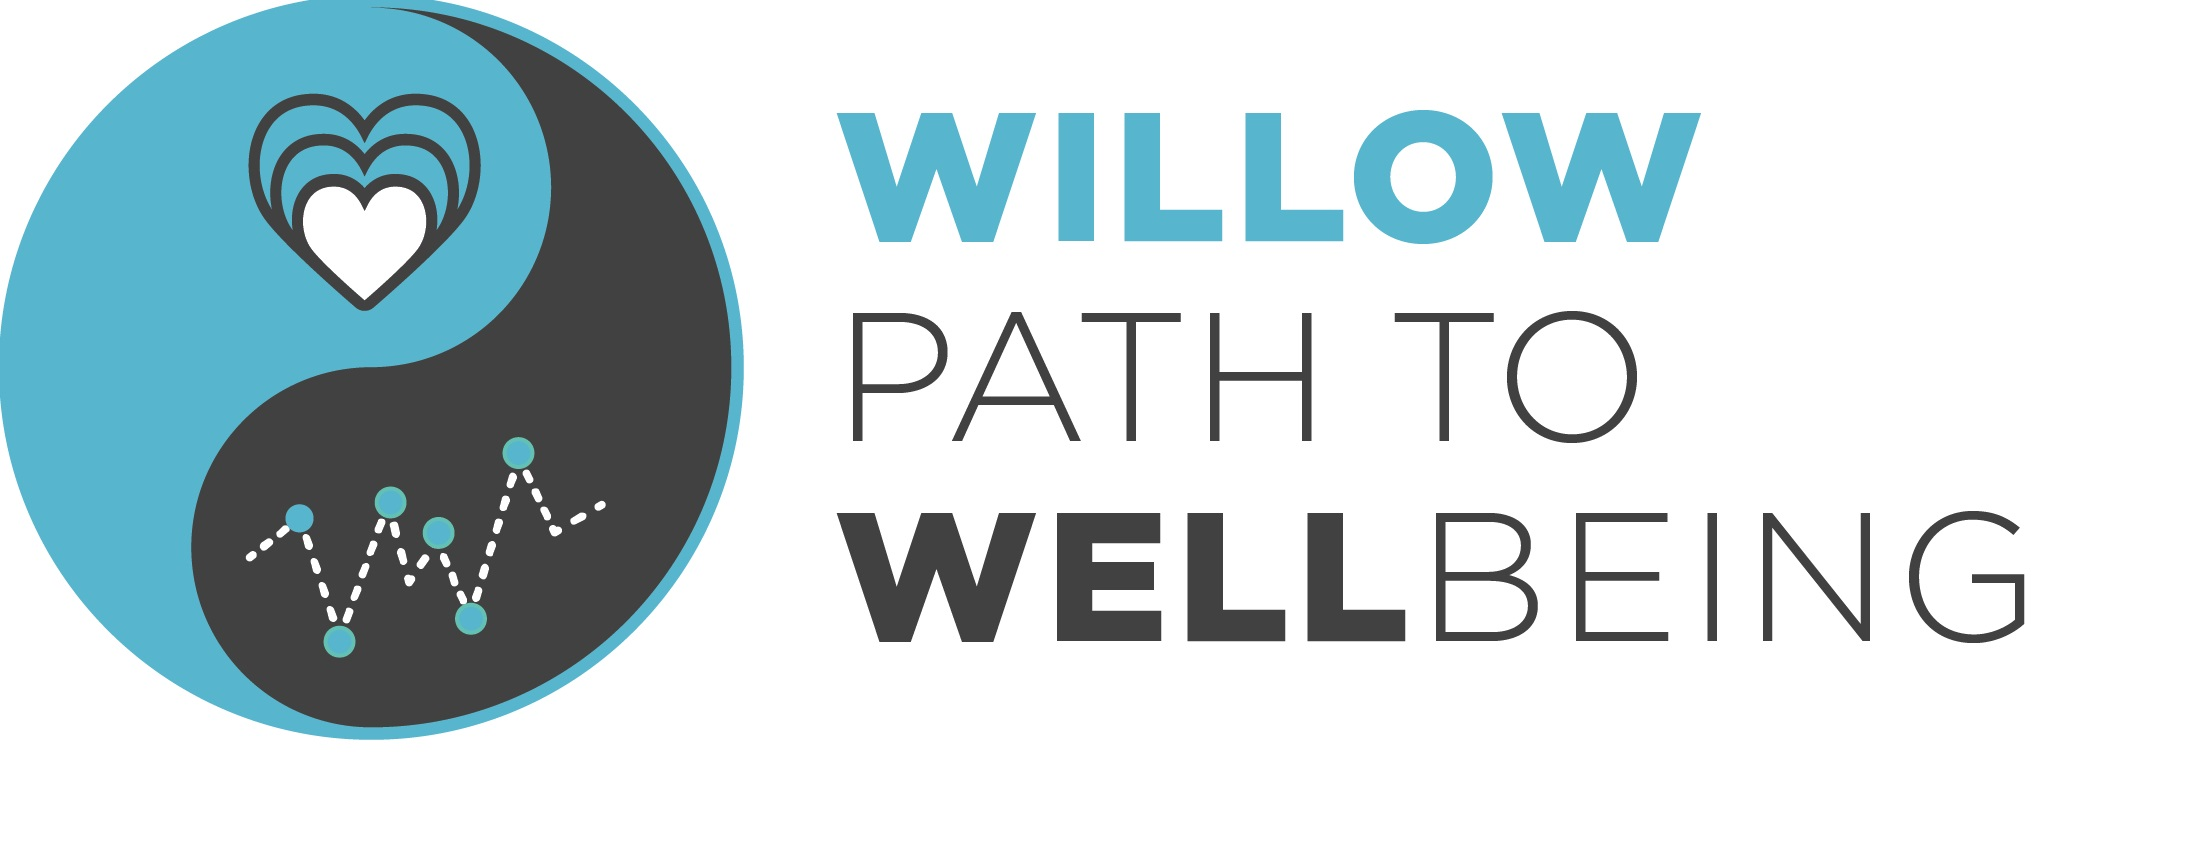 WILLOW Path to Wellbeing logo